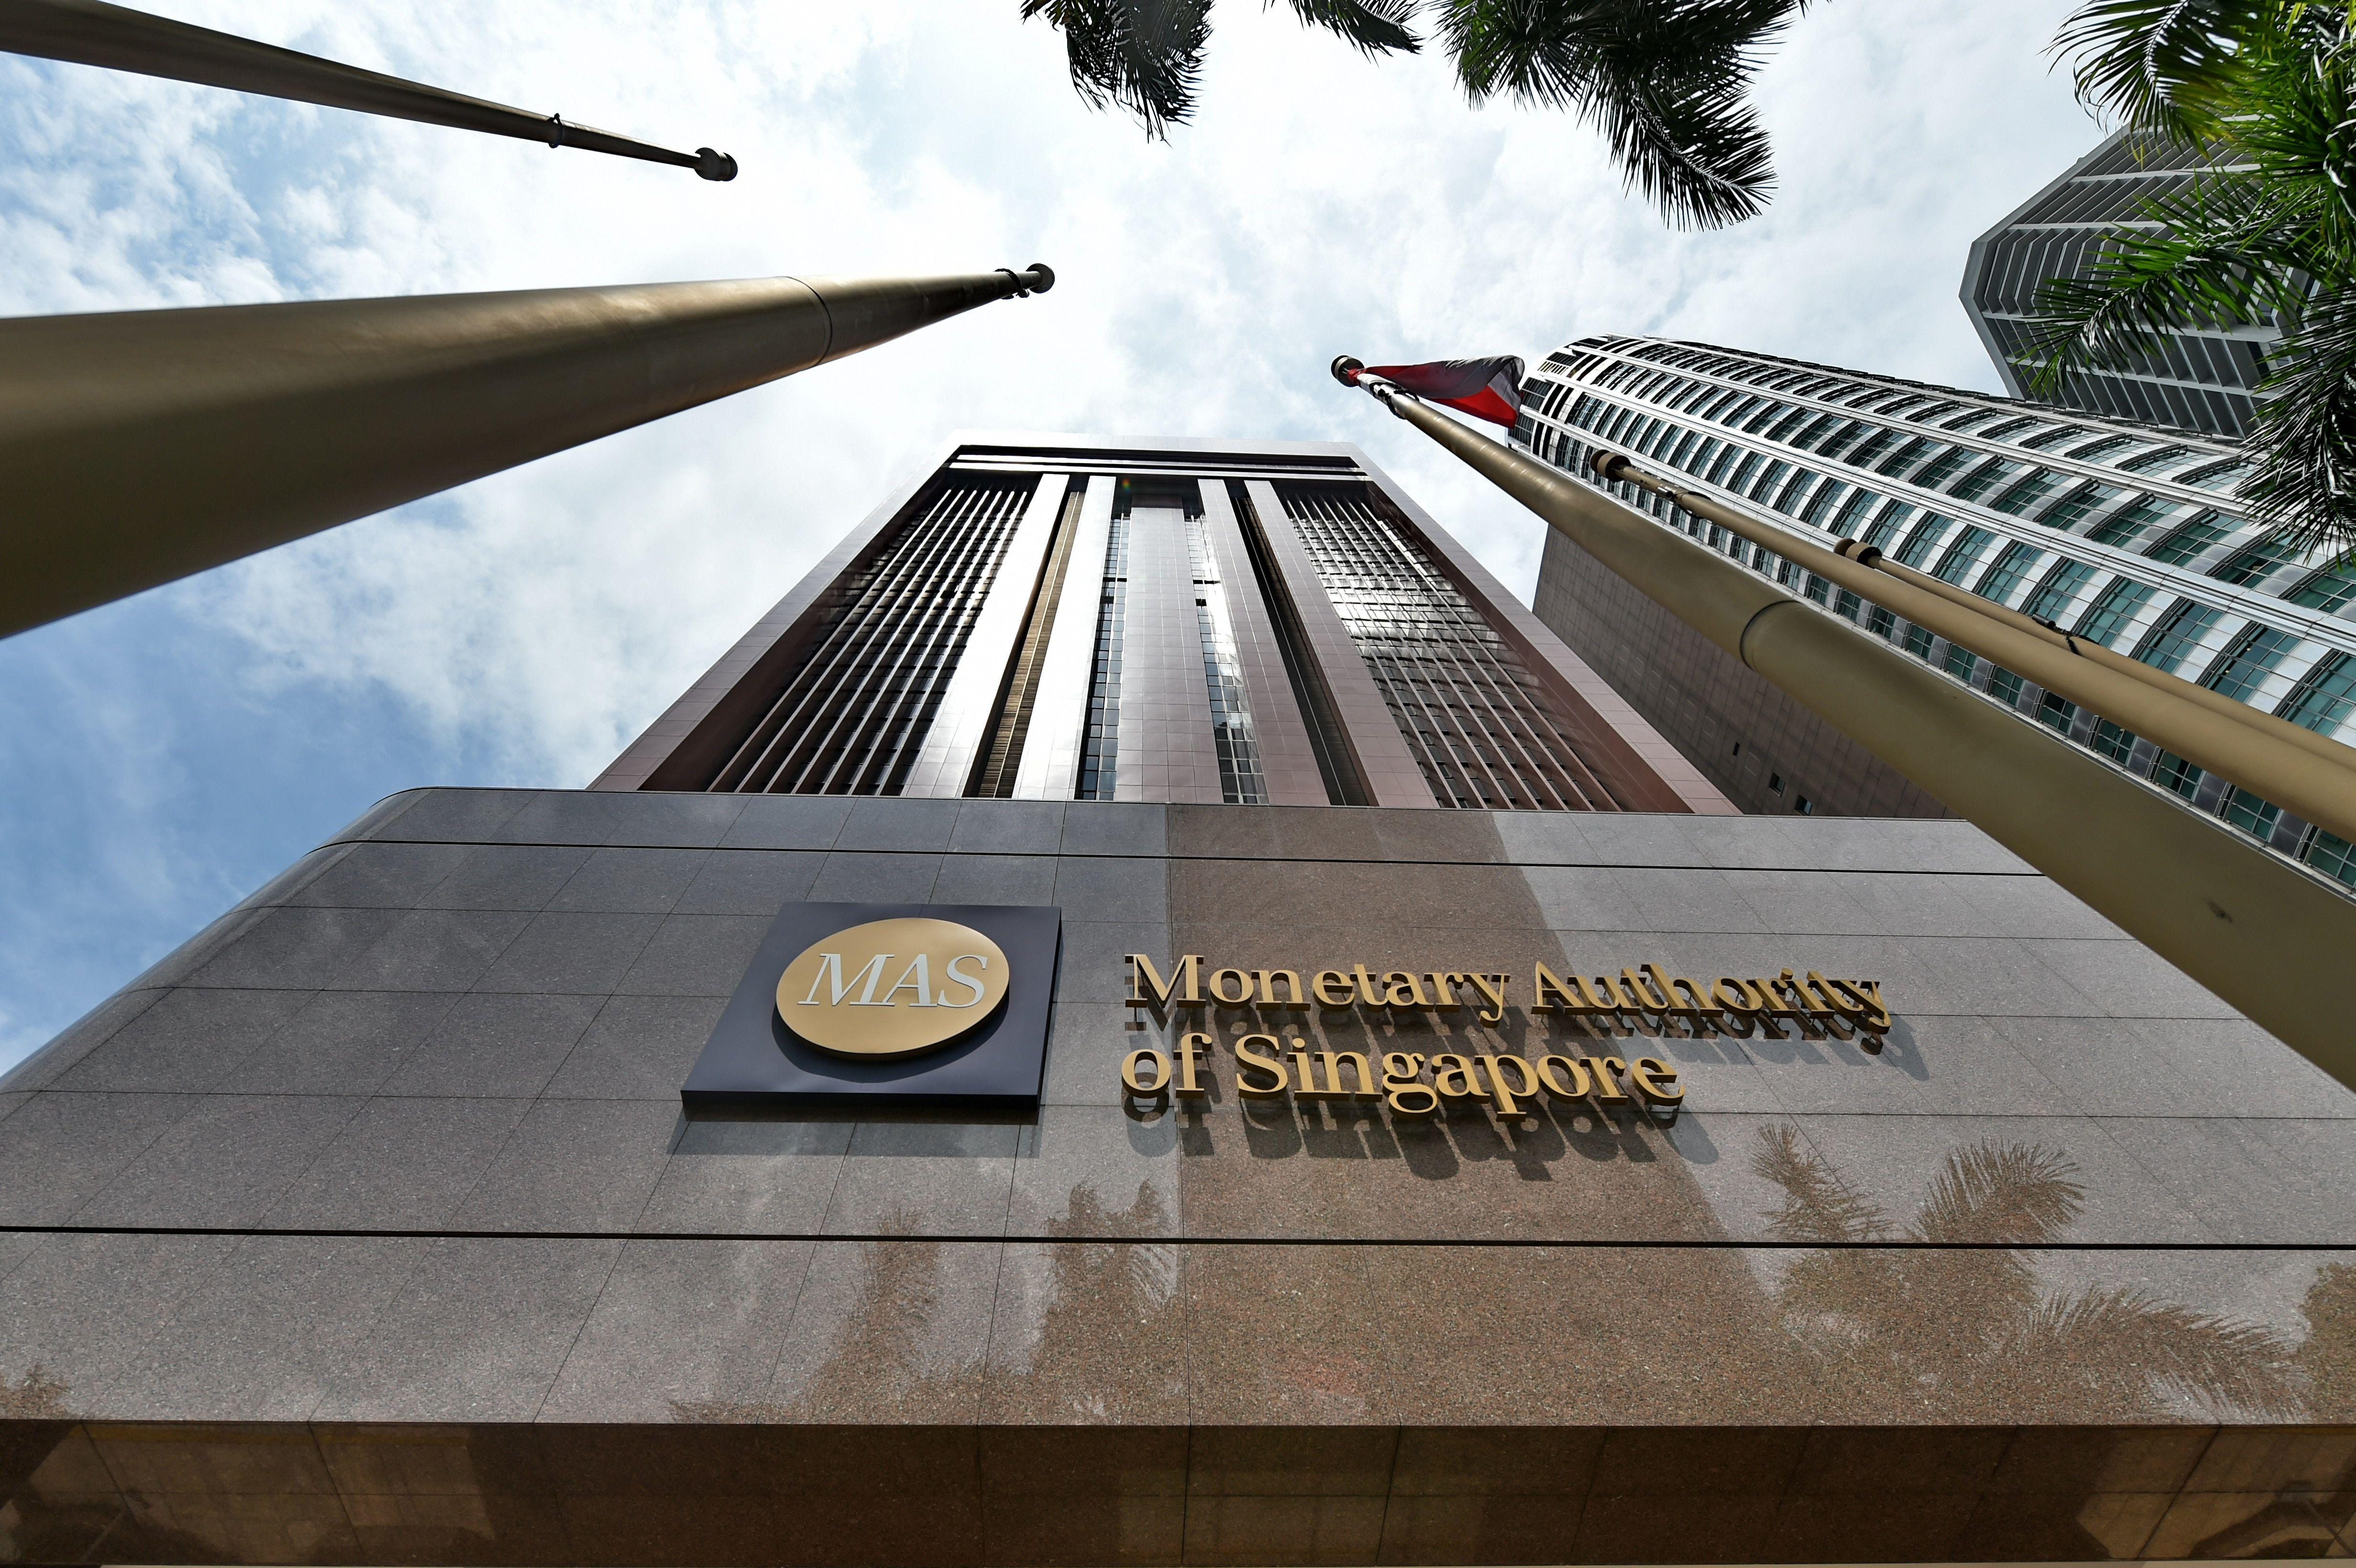 Singapore digital bank licence applicants must make strong case